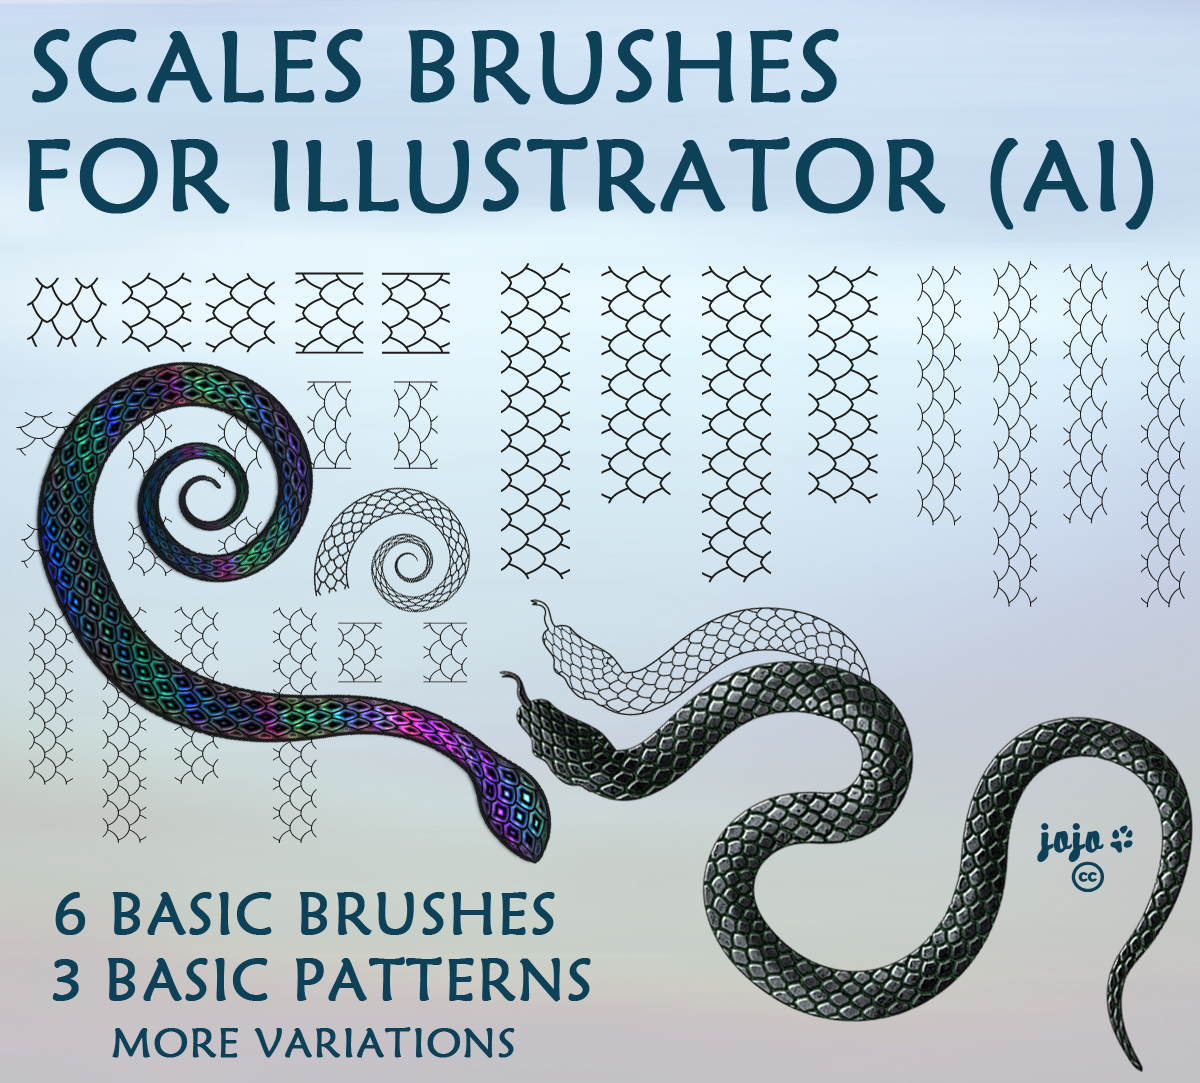 Scales brushes for Illustrator (AI) by jojo-ojoj on DeviantArt